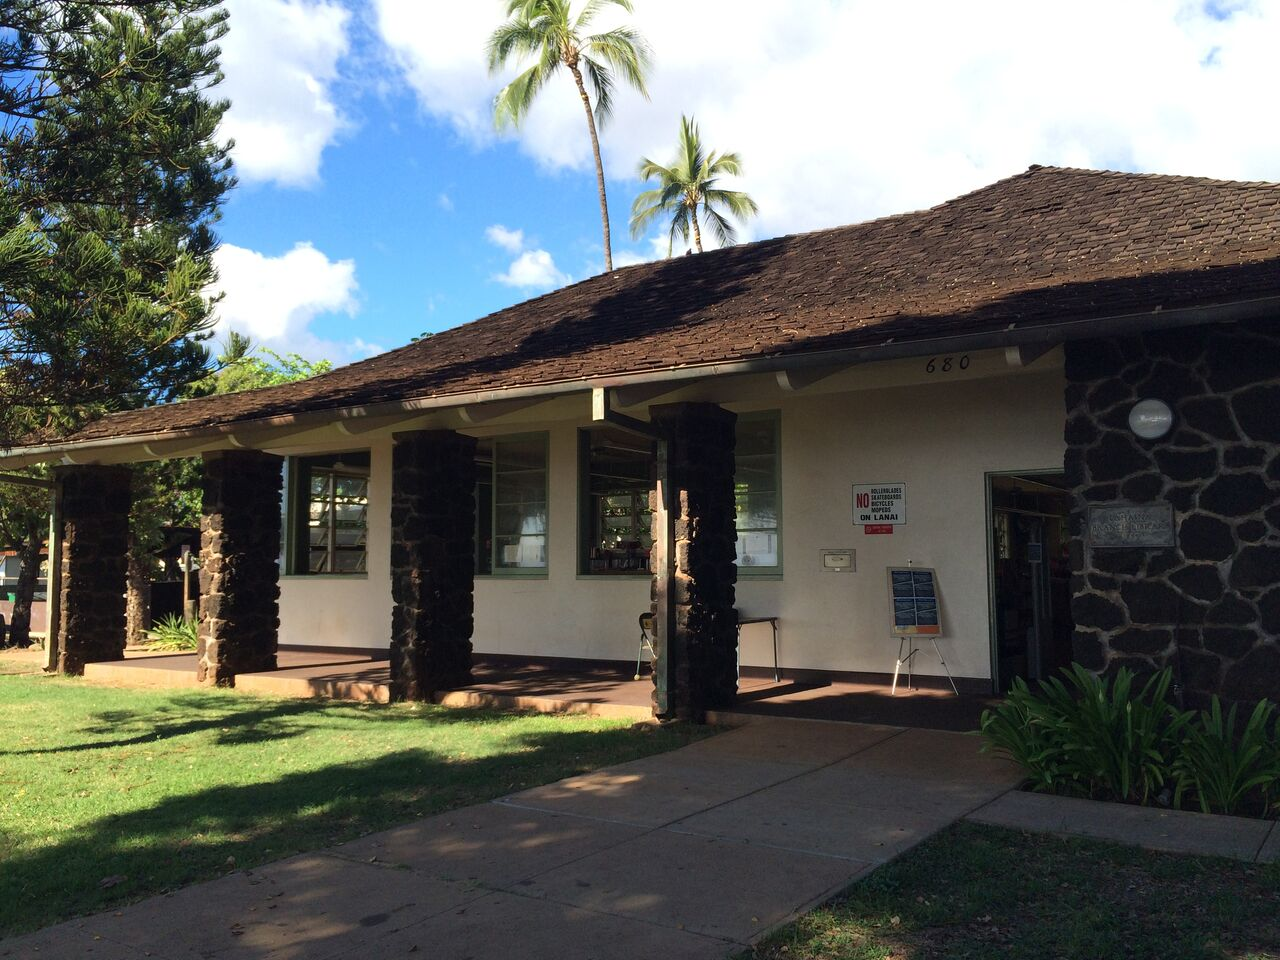 Lahaina Public Library Temporarily Closed After Employee Tests Positive for COVID-19